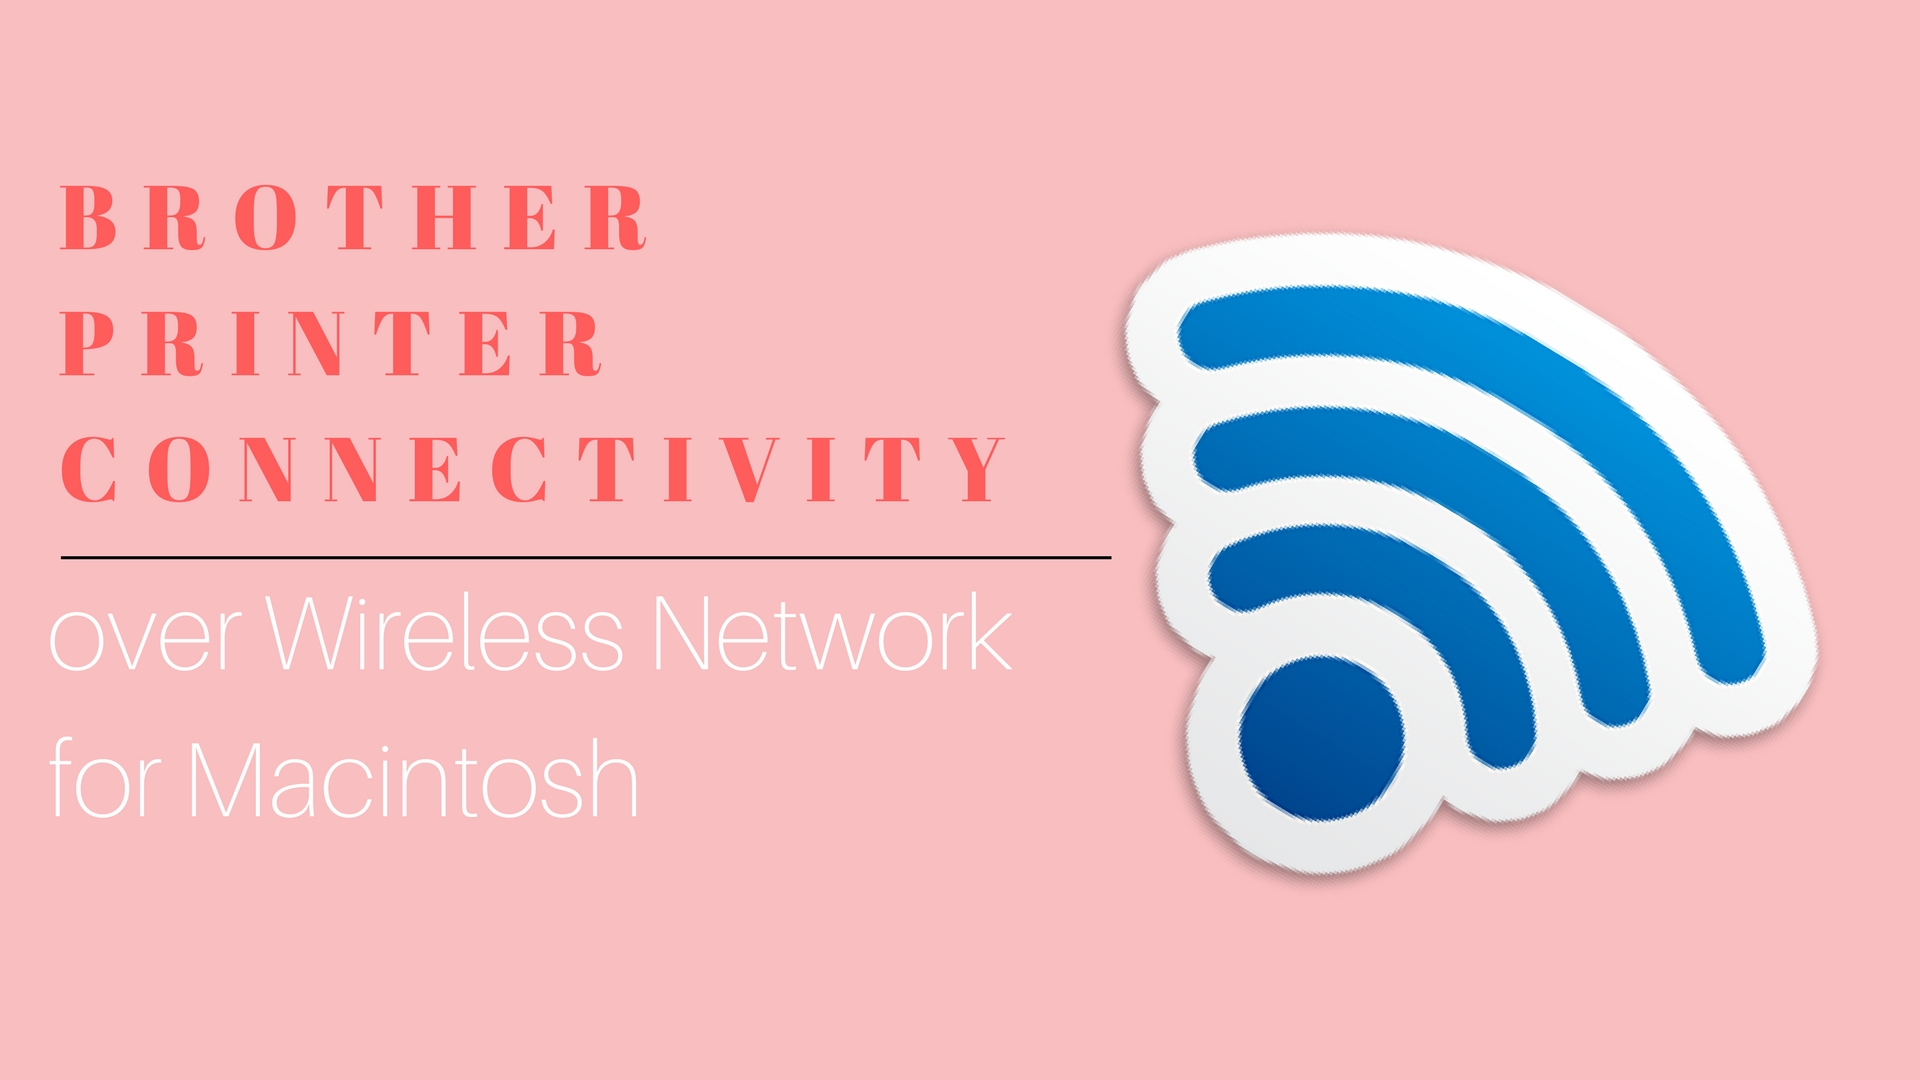 how to connect wireless printer to computer brother